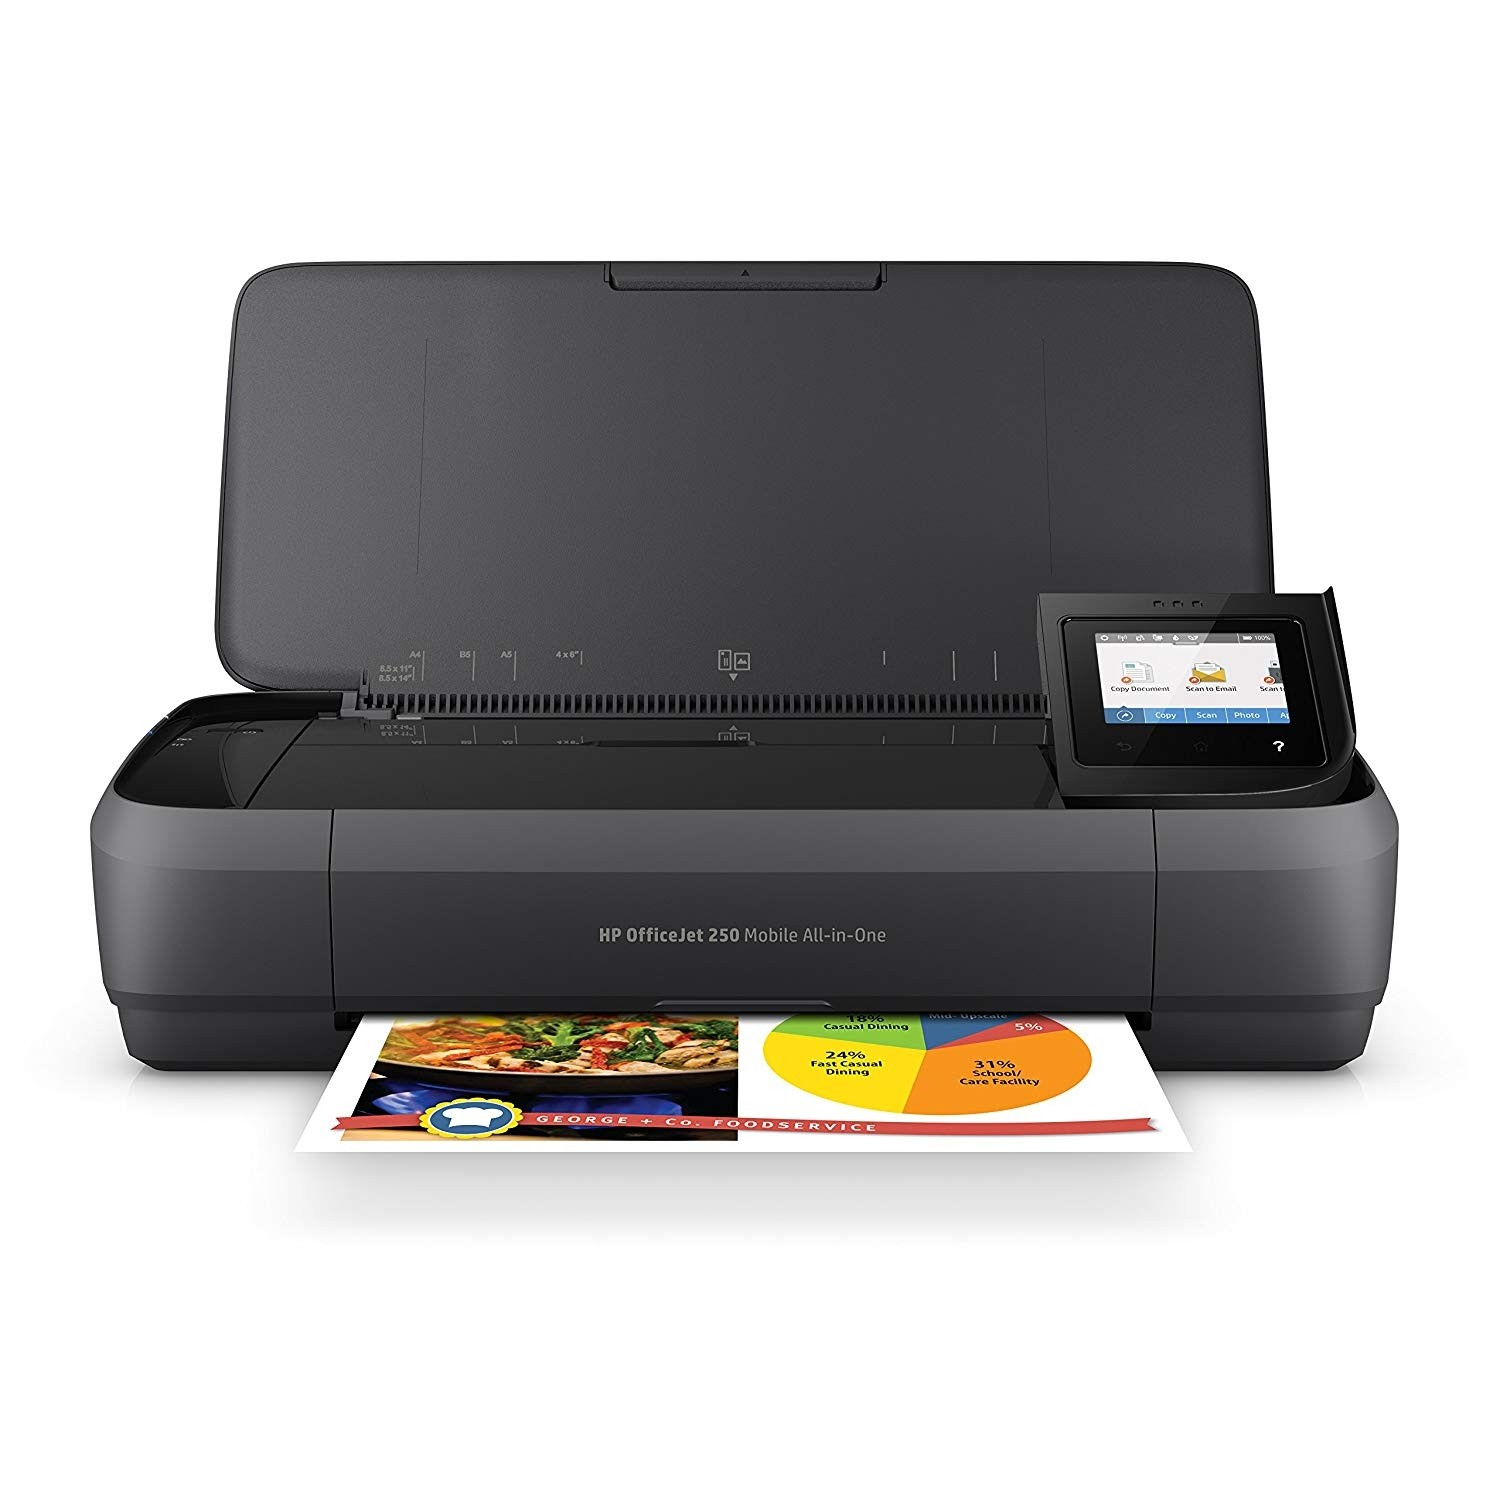 HP Officejet 250 mobiler All-in-One Multifunktionsdrucker